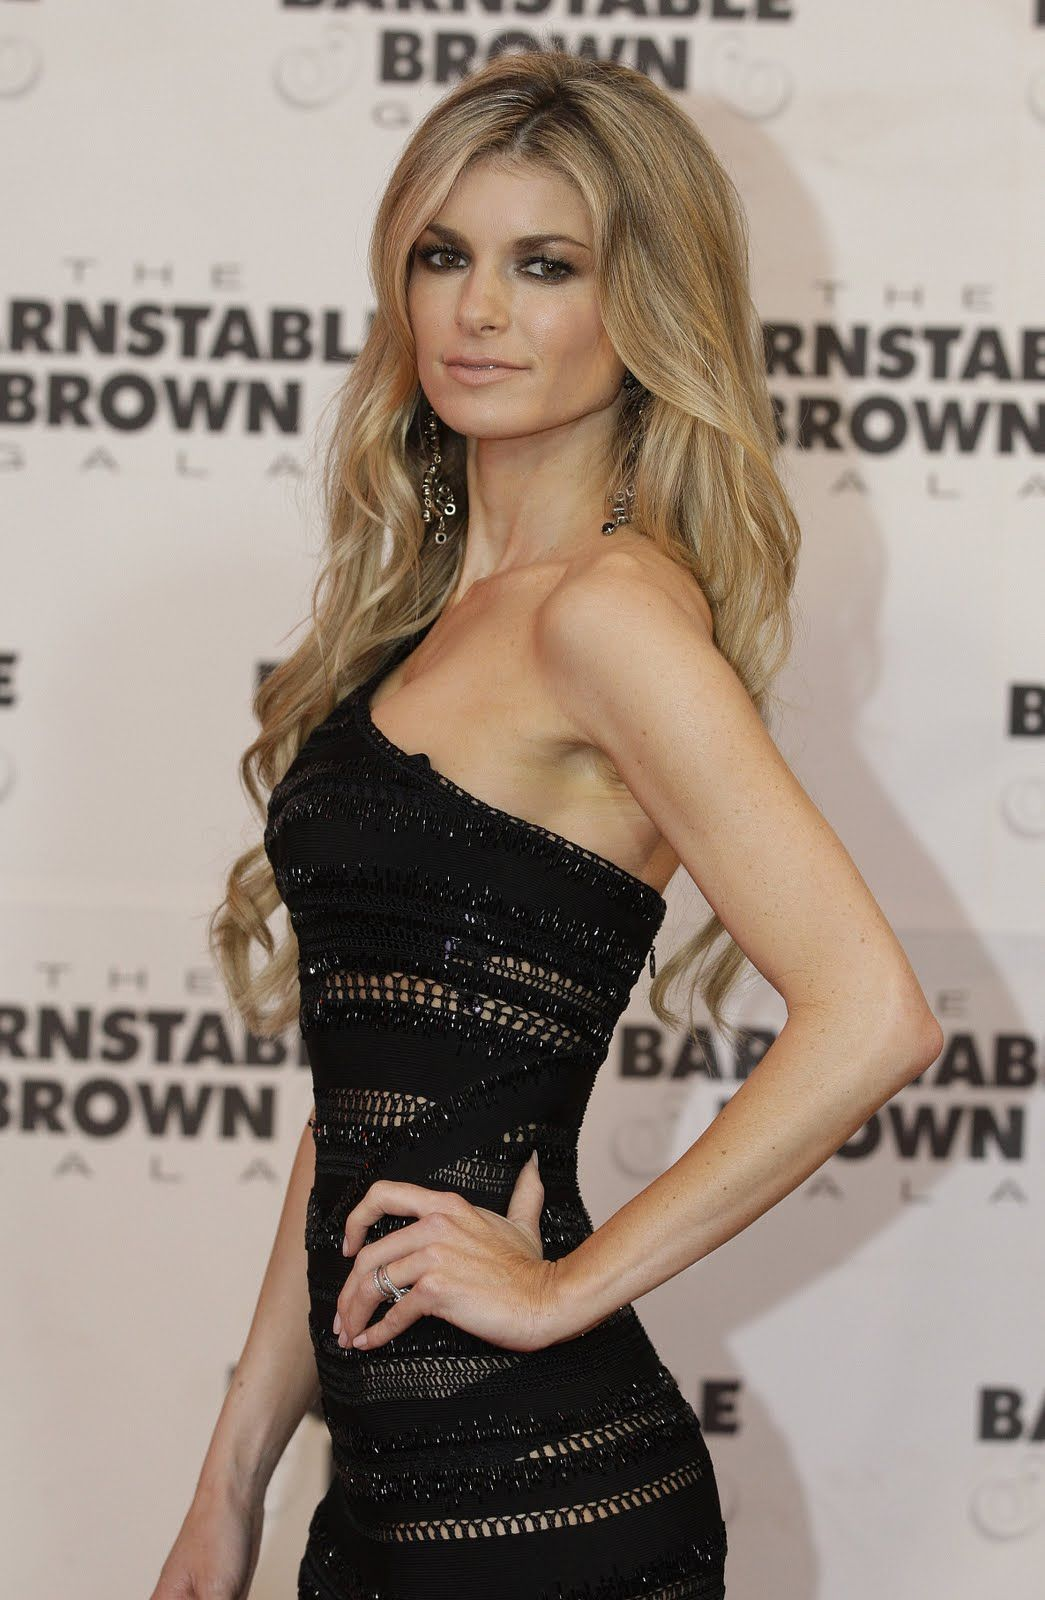 Image Detail For Marisa Miller Stunning In Herve Leger